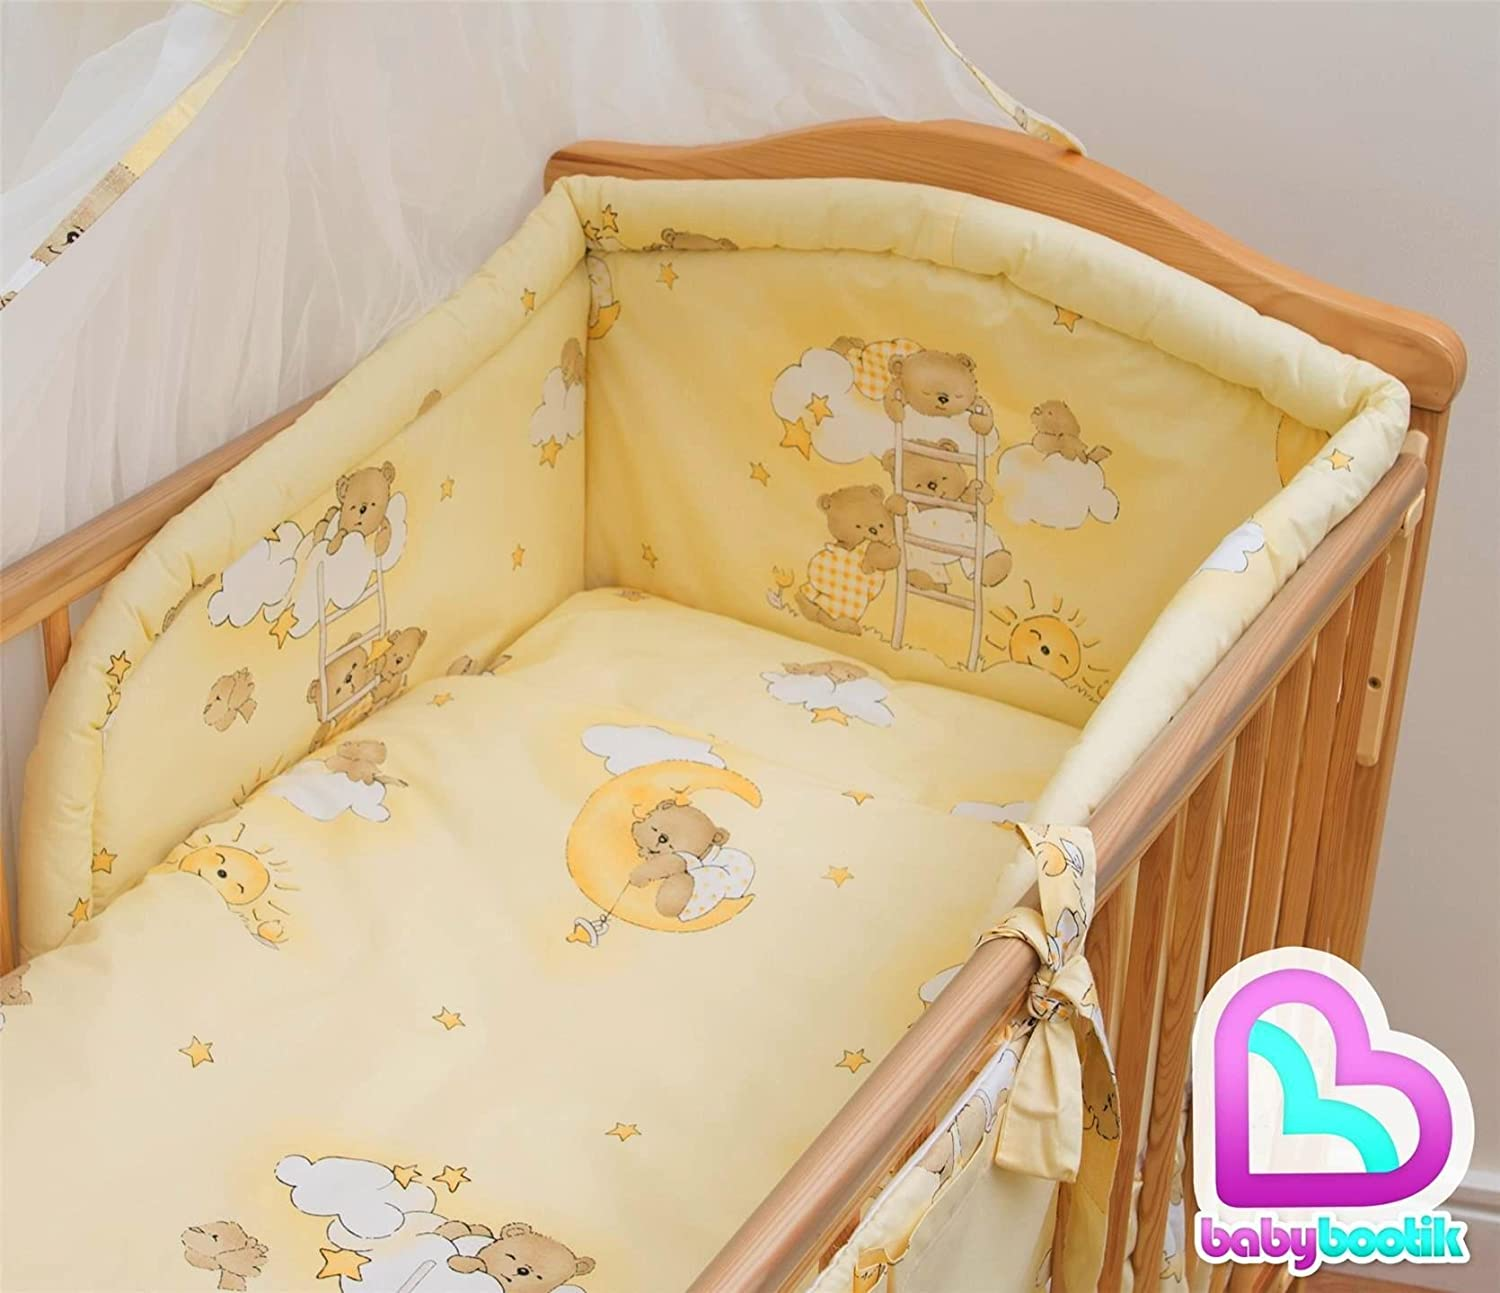 6 Piece Baby Cot Bedding with Padded Thick Bumper and Fitted Sheet Pattern 10 120x60 cm